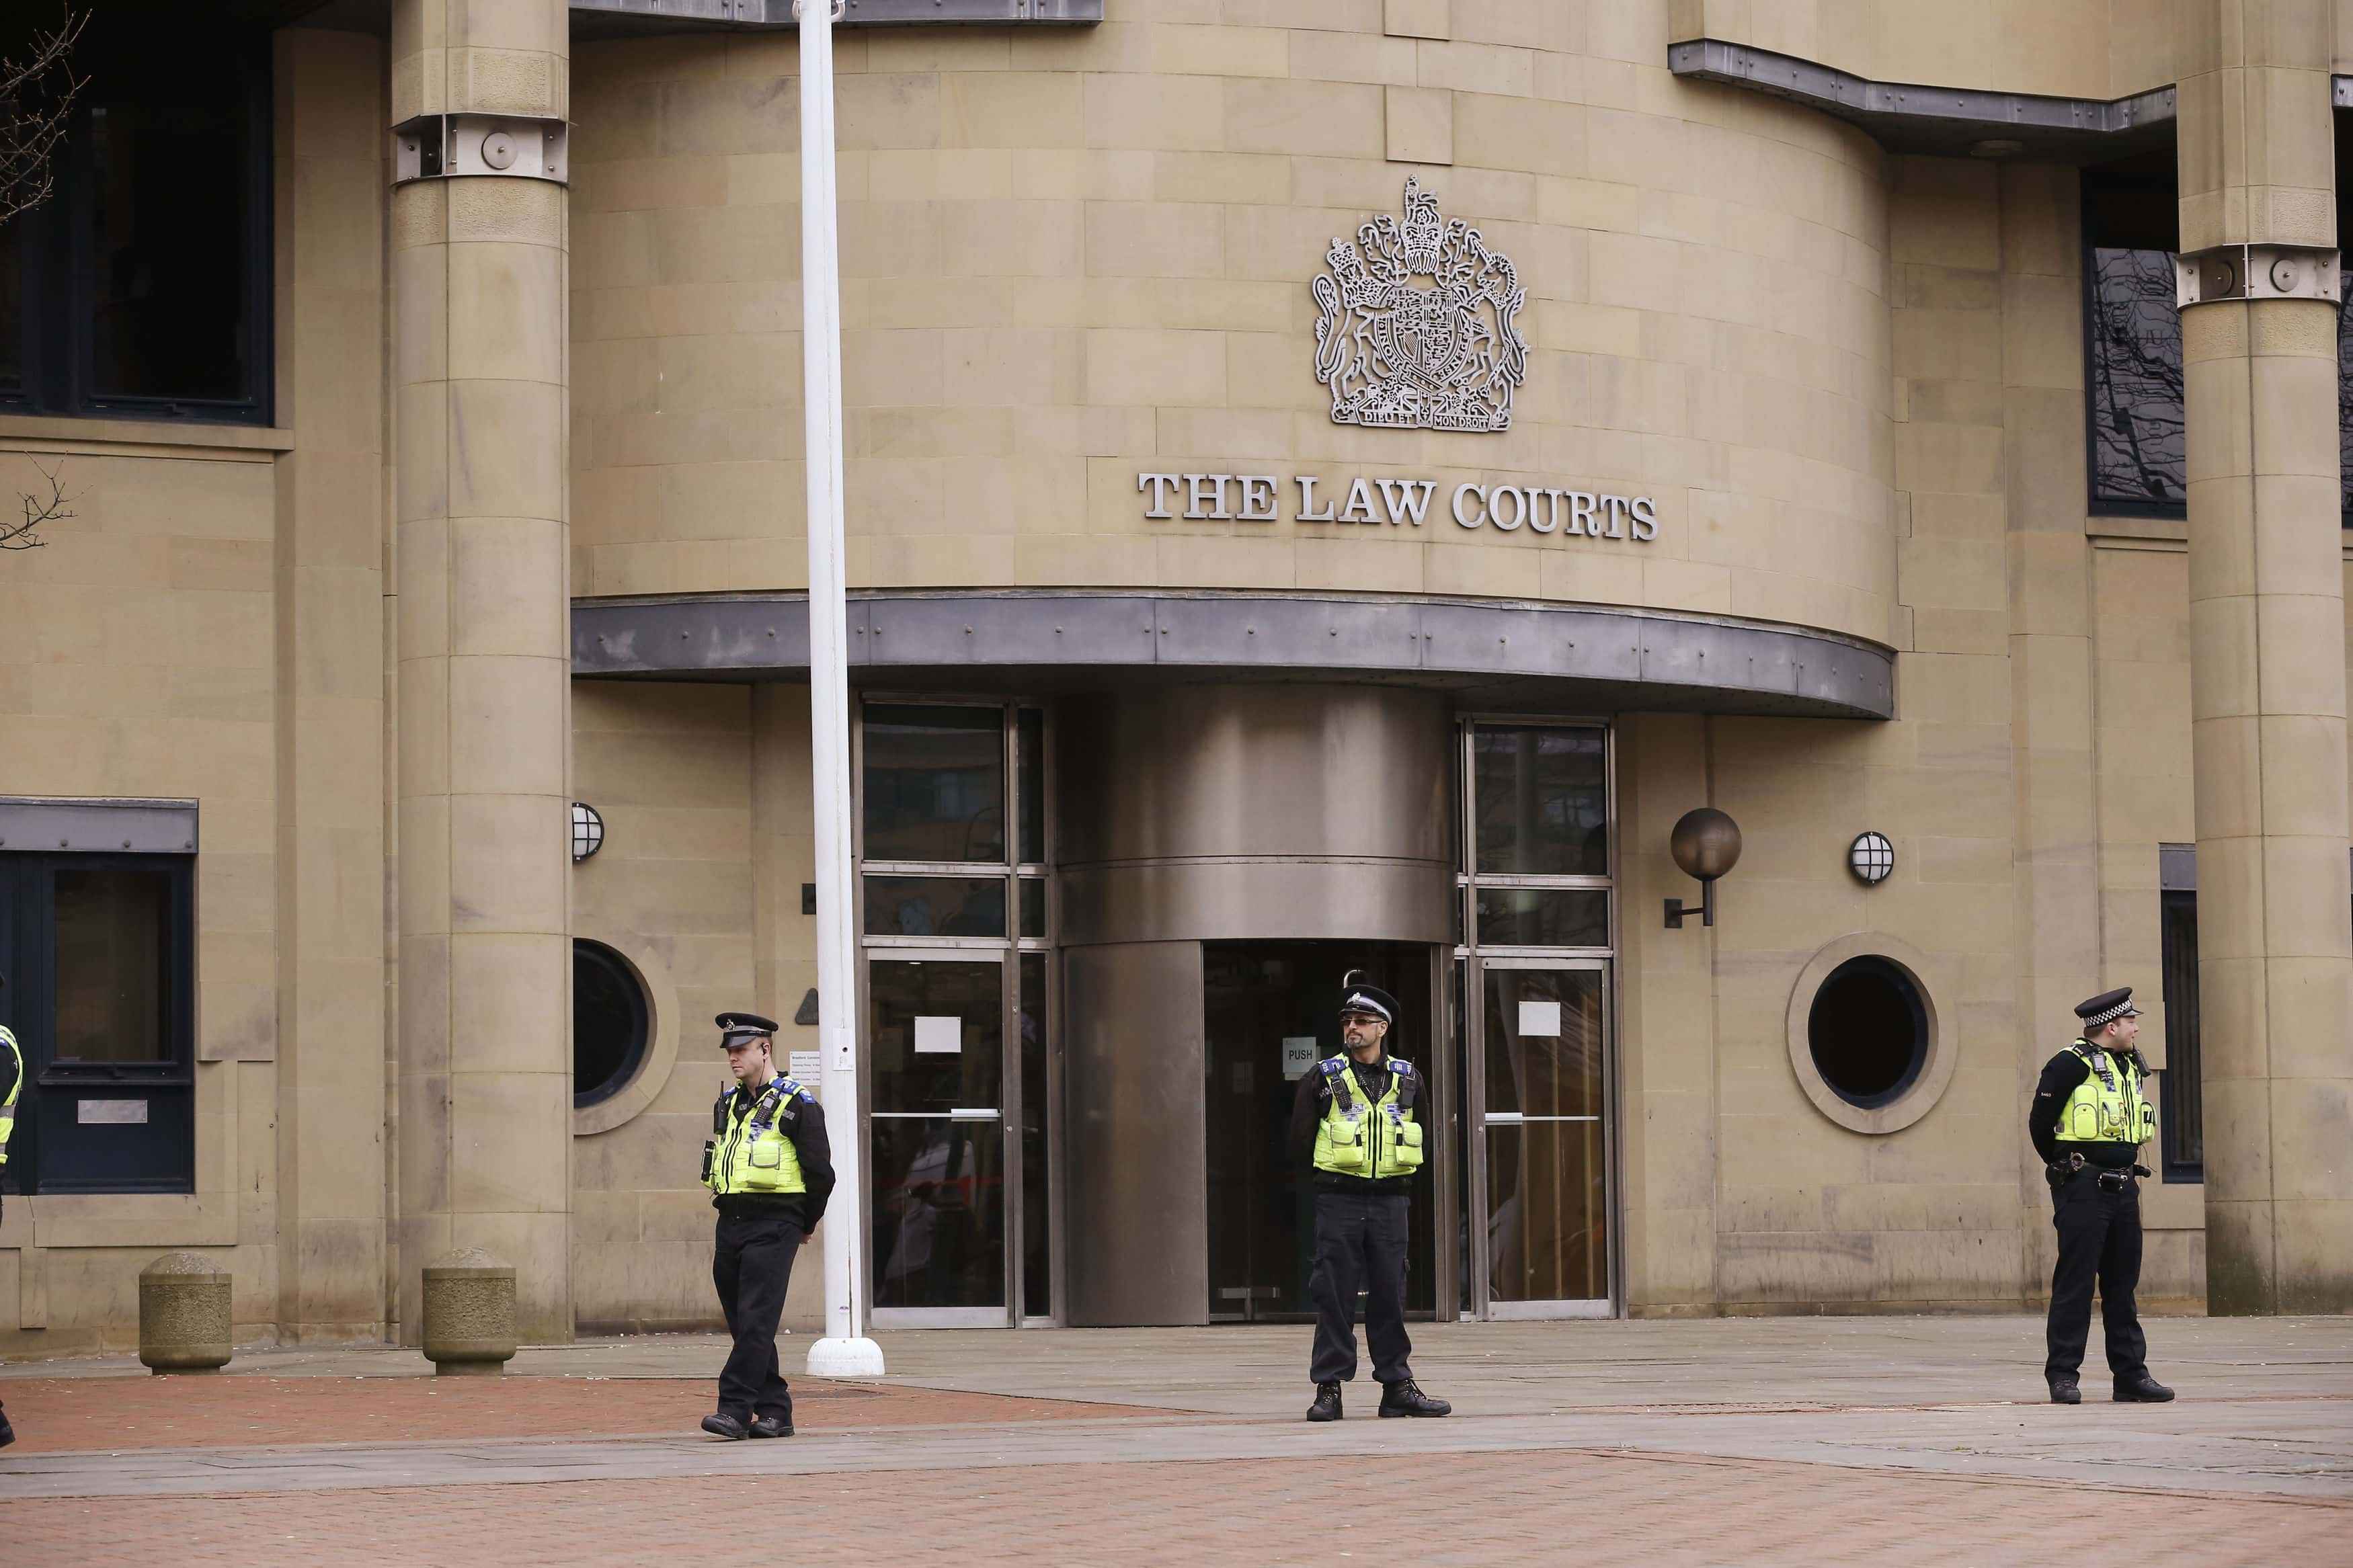 Police officers form a cordon ahead of the arrival of former England footballer Adam Johnson at Bradford Crown Court where he is expected to be jailed after he was found guilty of one offence of sexual activity with a child by a jury there earlier this month.